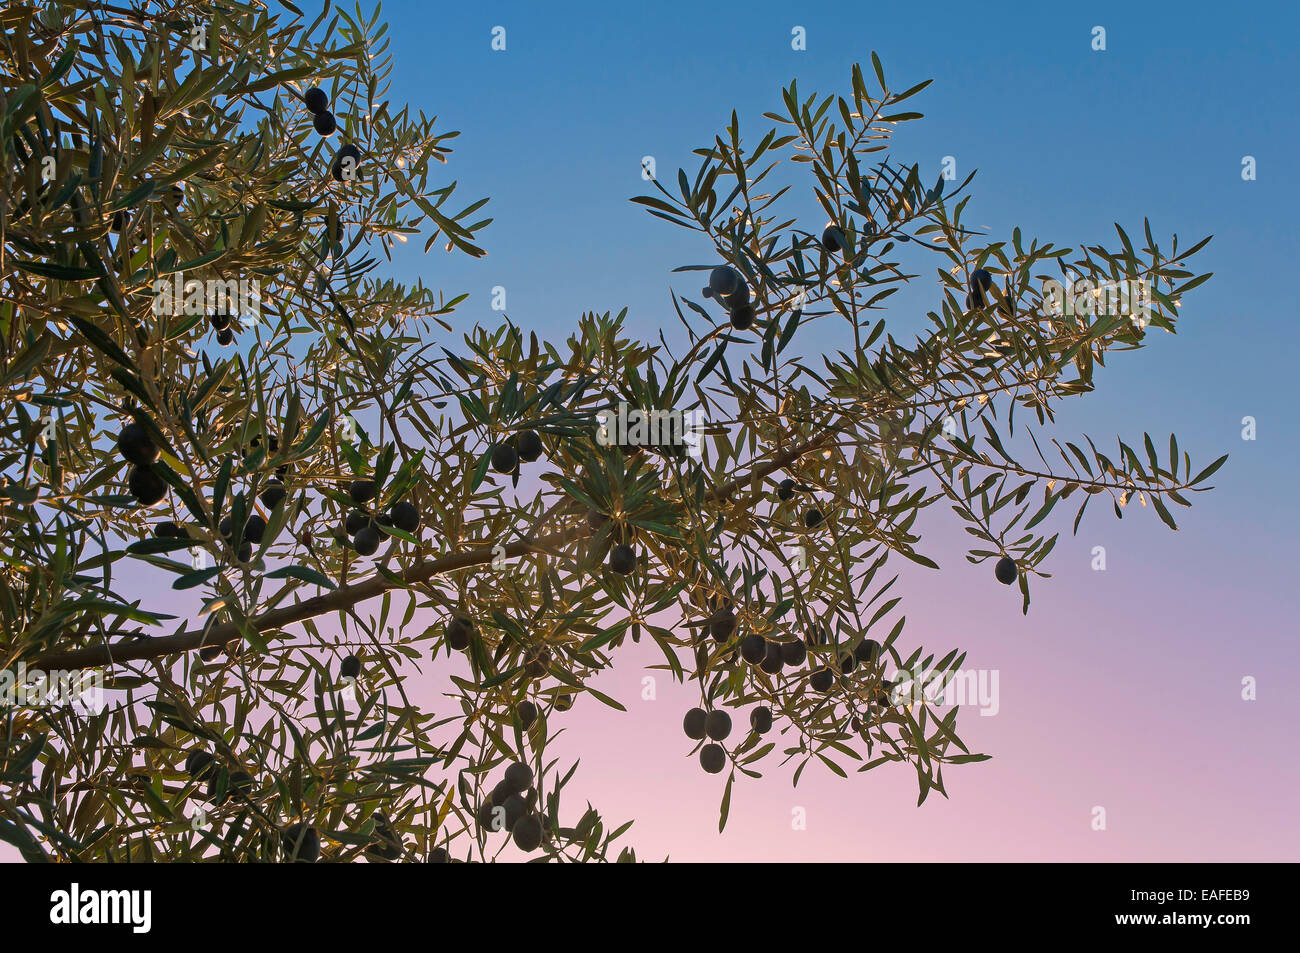 Olive branch, Martos, Jaen province, Region of Andalusia, Spain, Europe - Stock Image